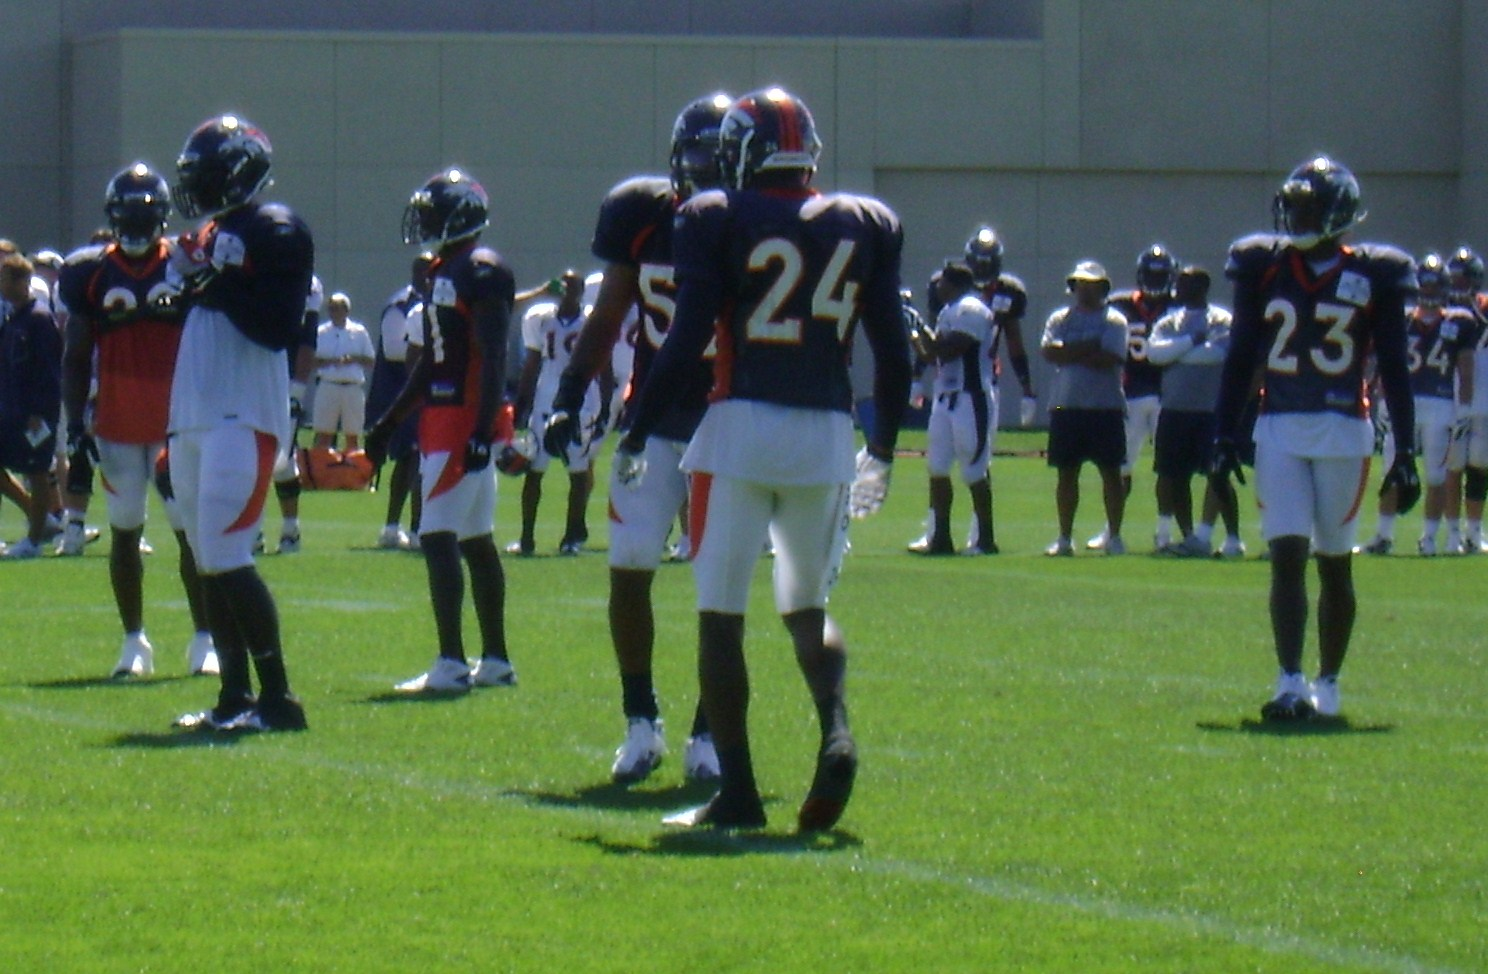 At least four of these players will not be starting in Denver in 2011 (Bailey, Dawkins, Andre Goodman and Renaldo Hill)